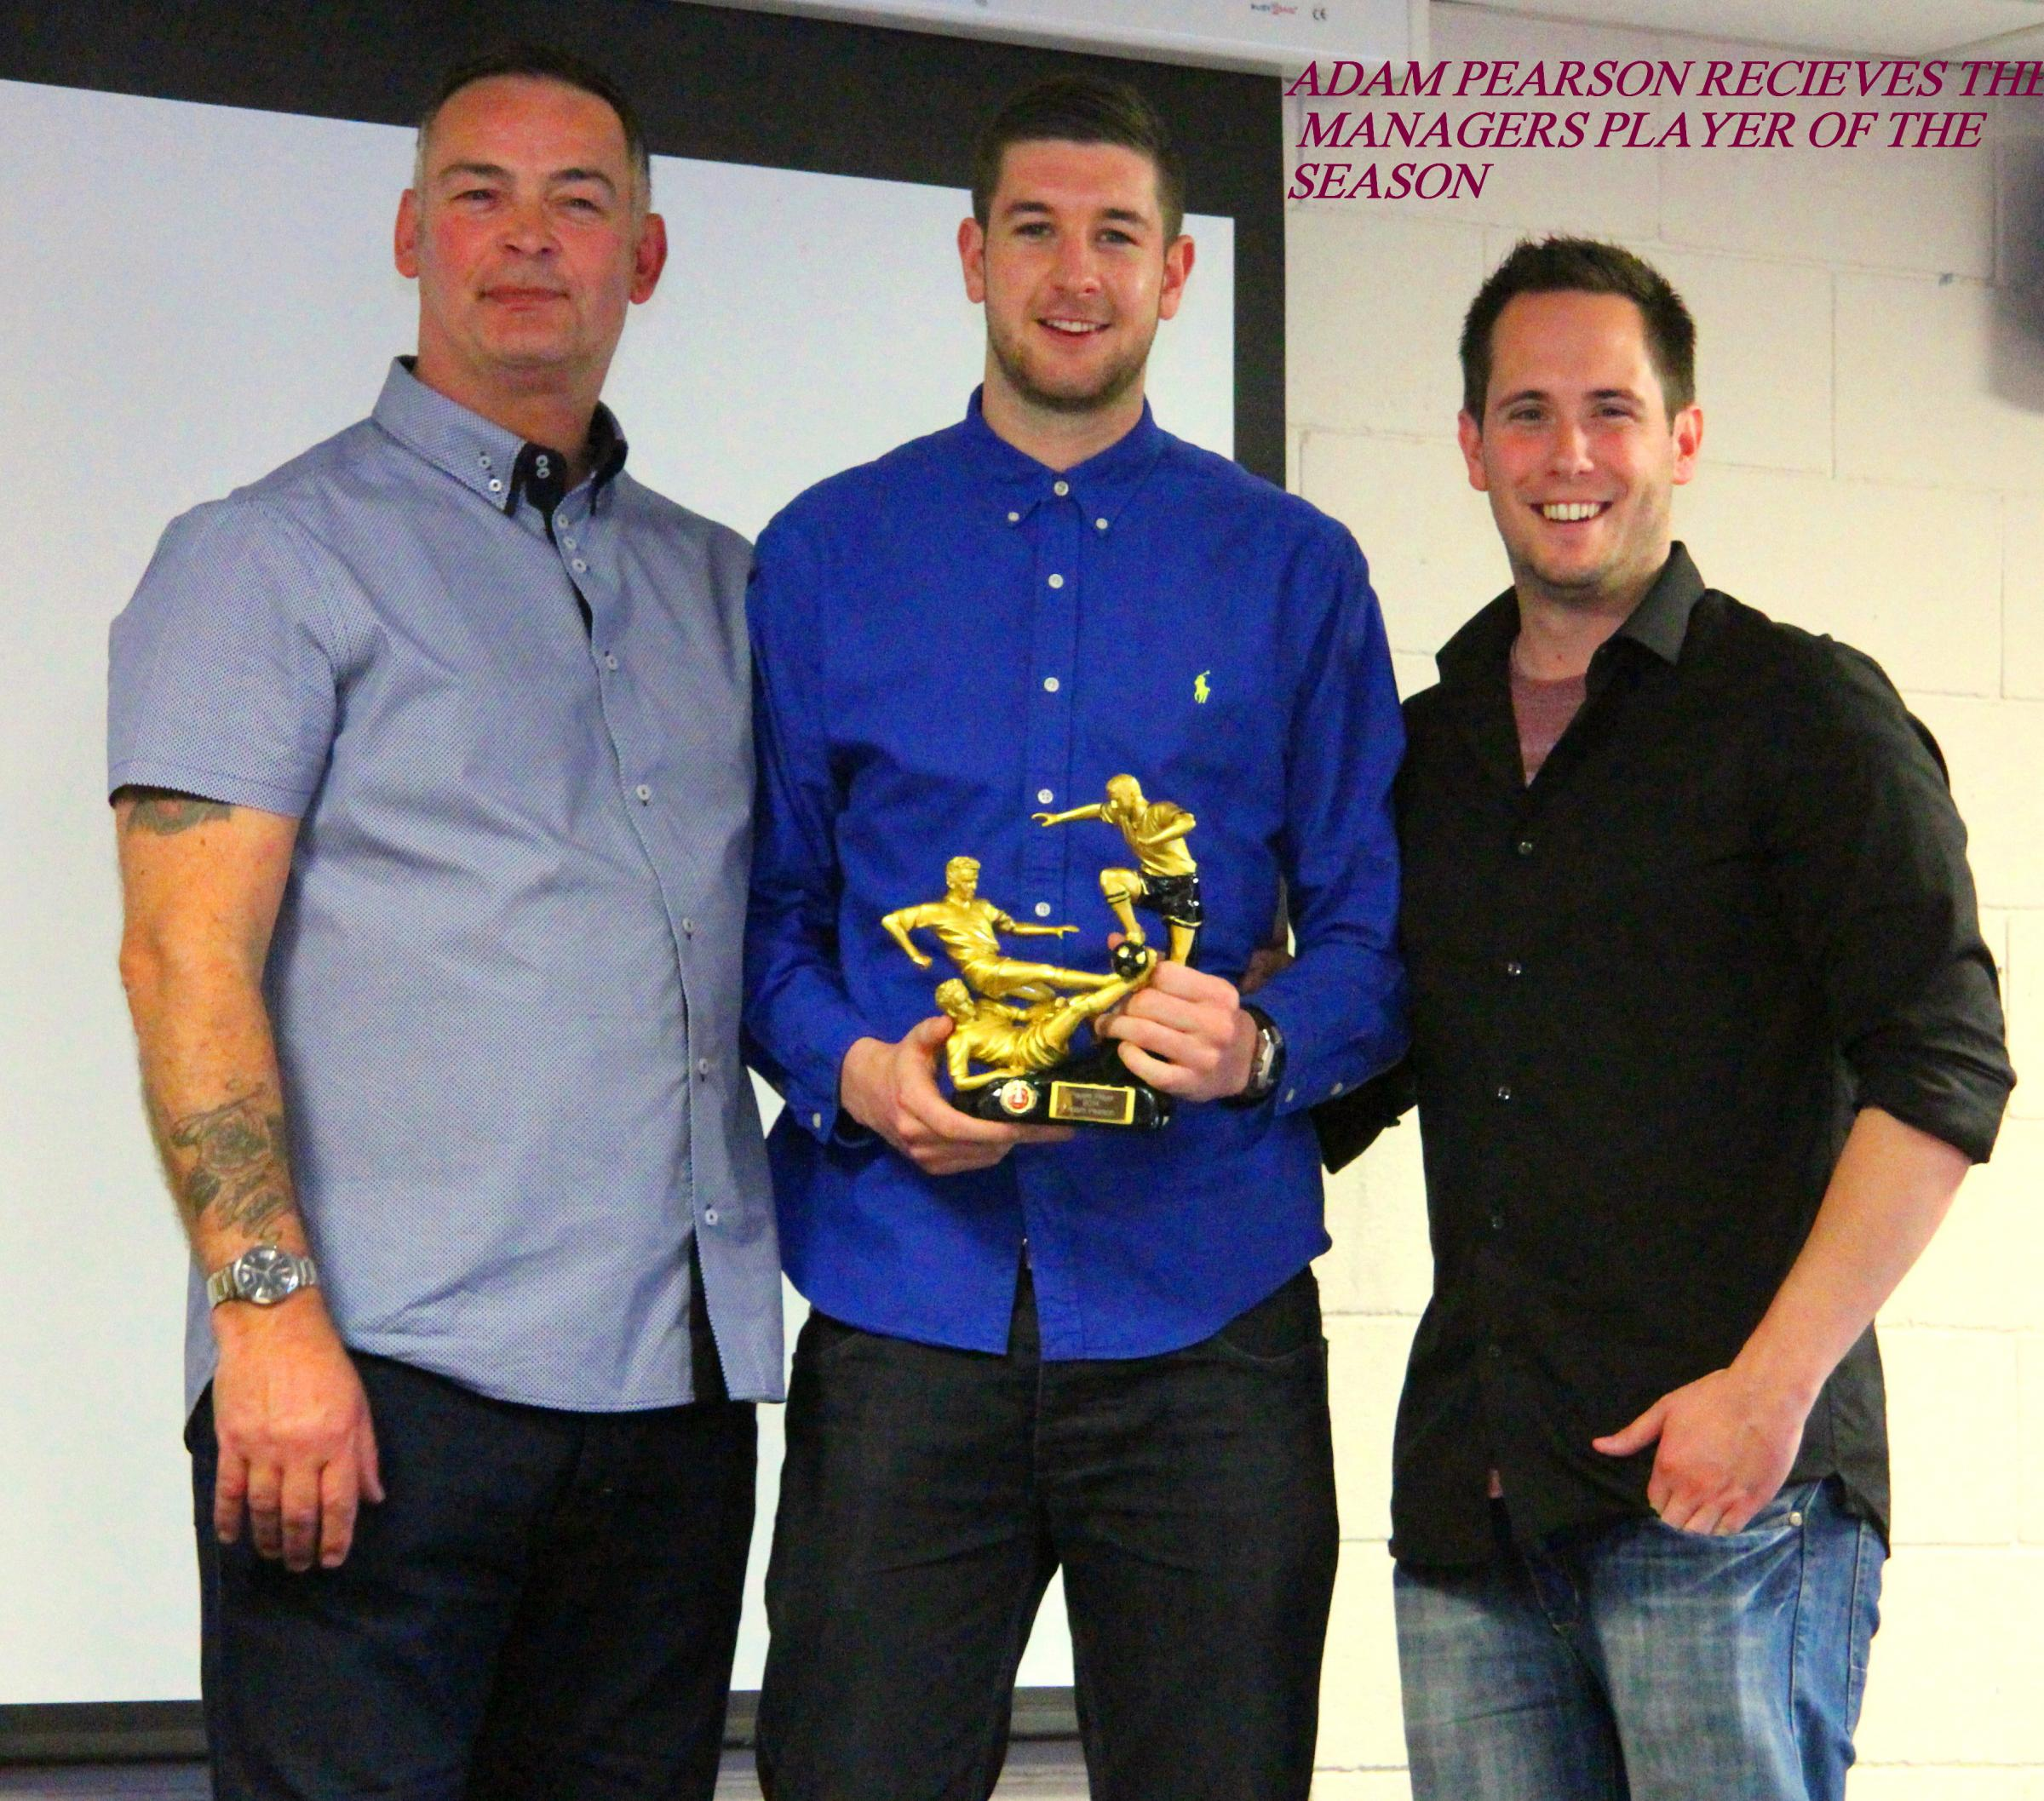 Adam Pearson took two awards at the presentation evening